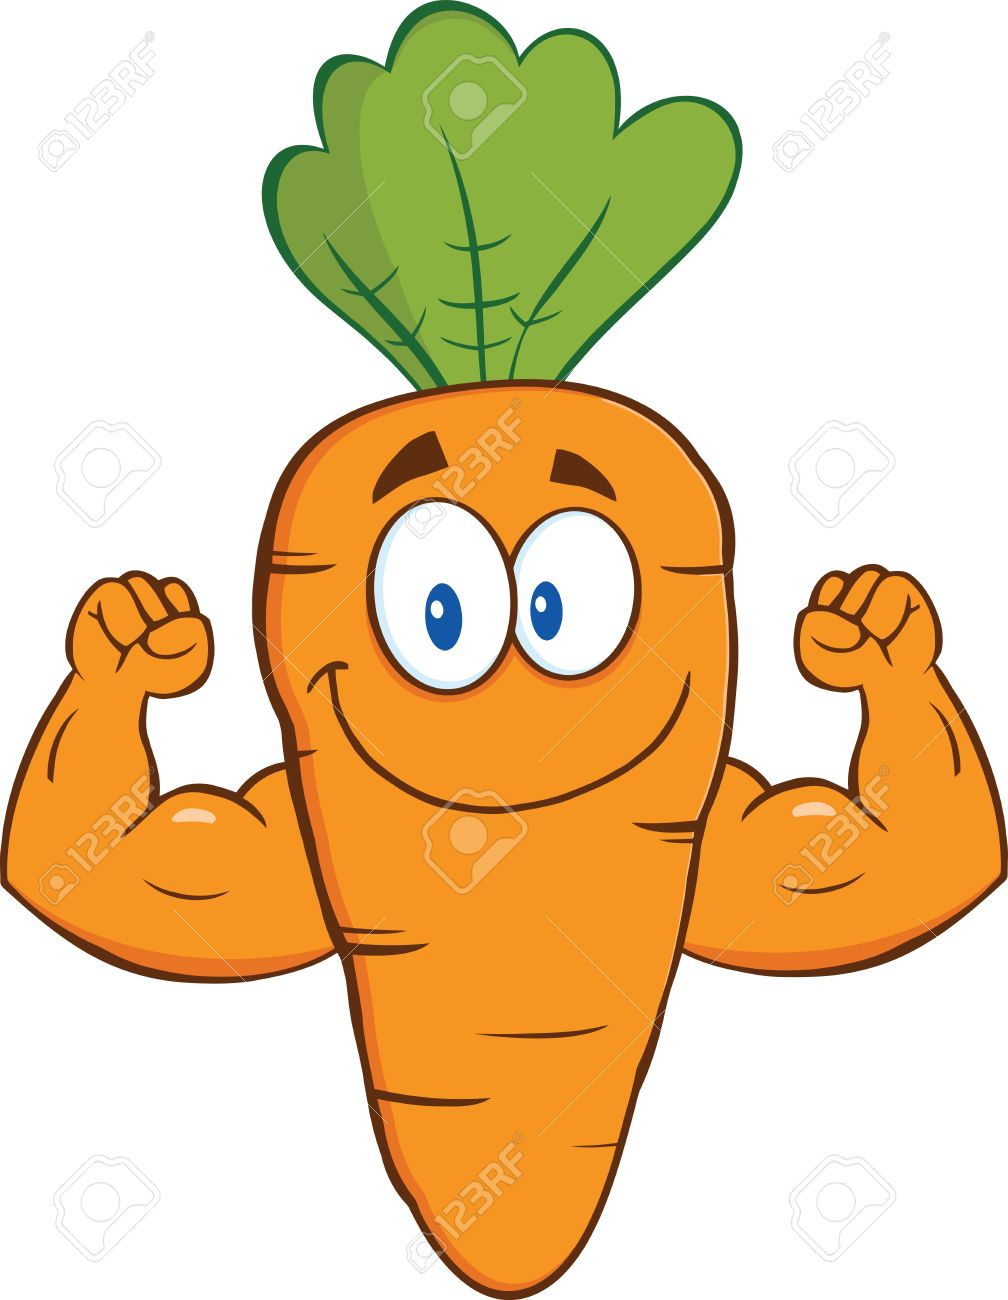 Cute Carrot Cartoon Character Showing Muscle Arms Illustration